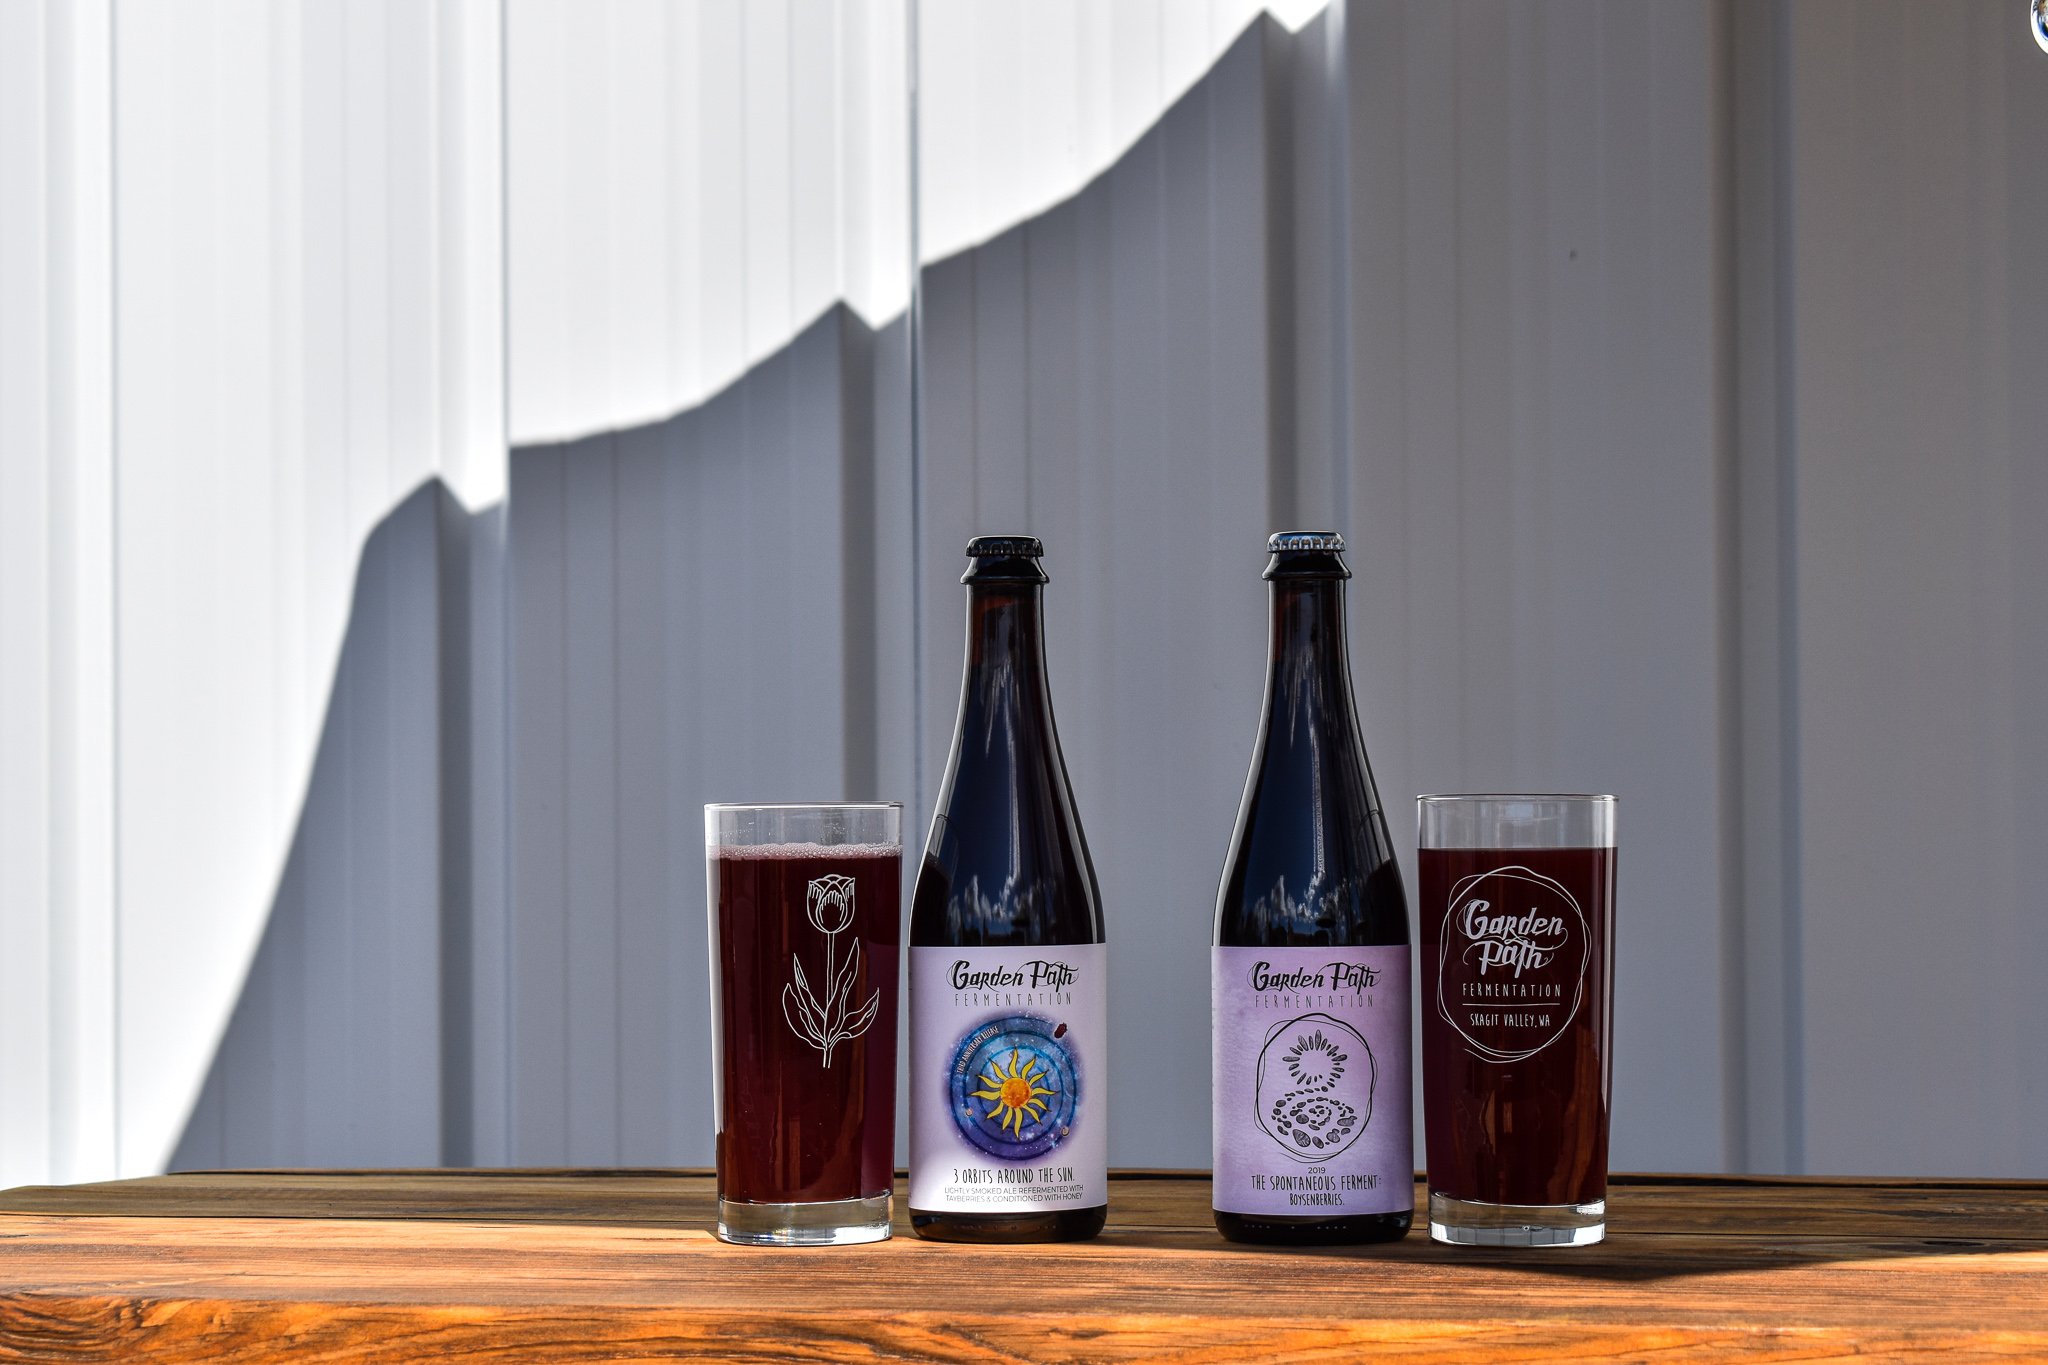 image of 3 Orbits Around the Sun and The Spontaneous Ferment: Boysenberries courtesy of Garden Path Fermentation